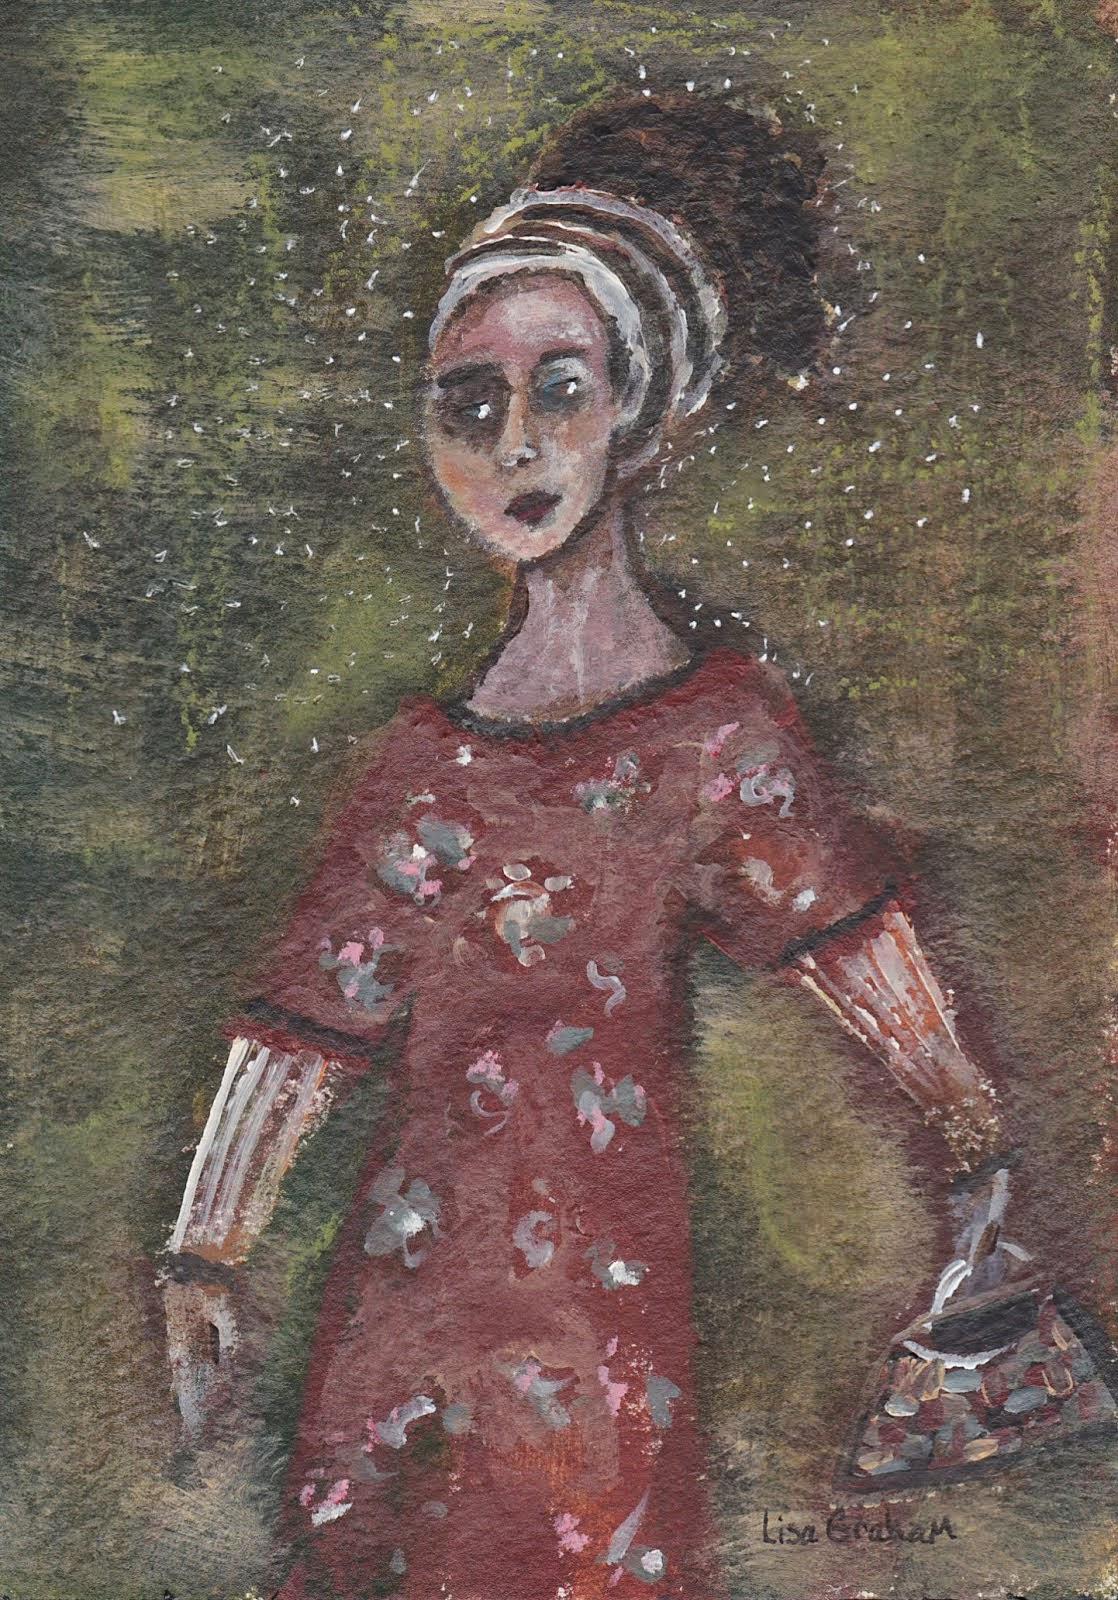 Small Works on Etsy